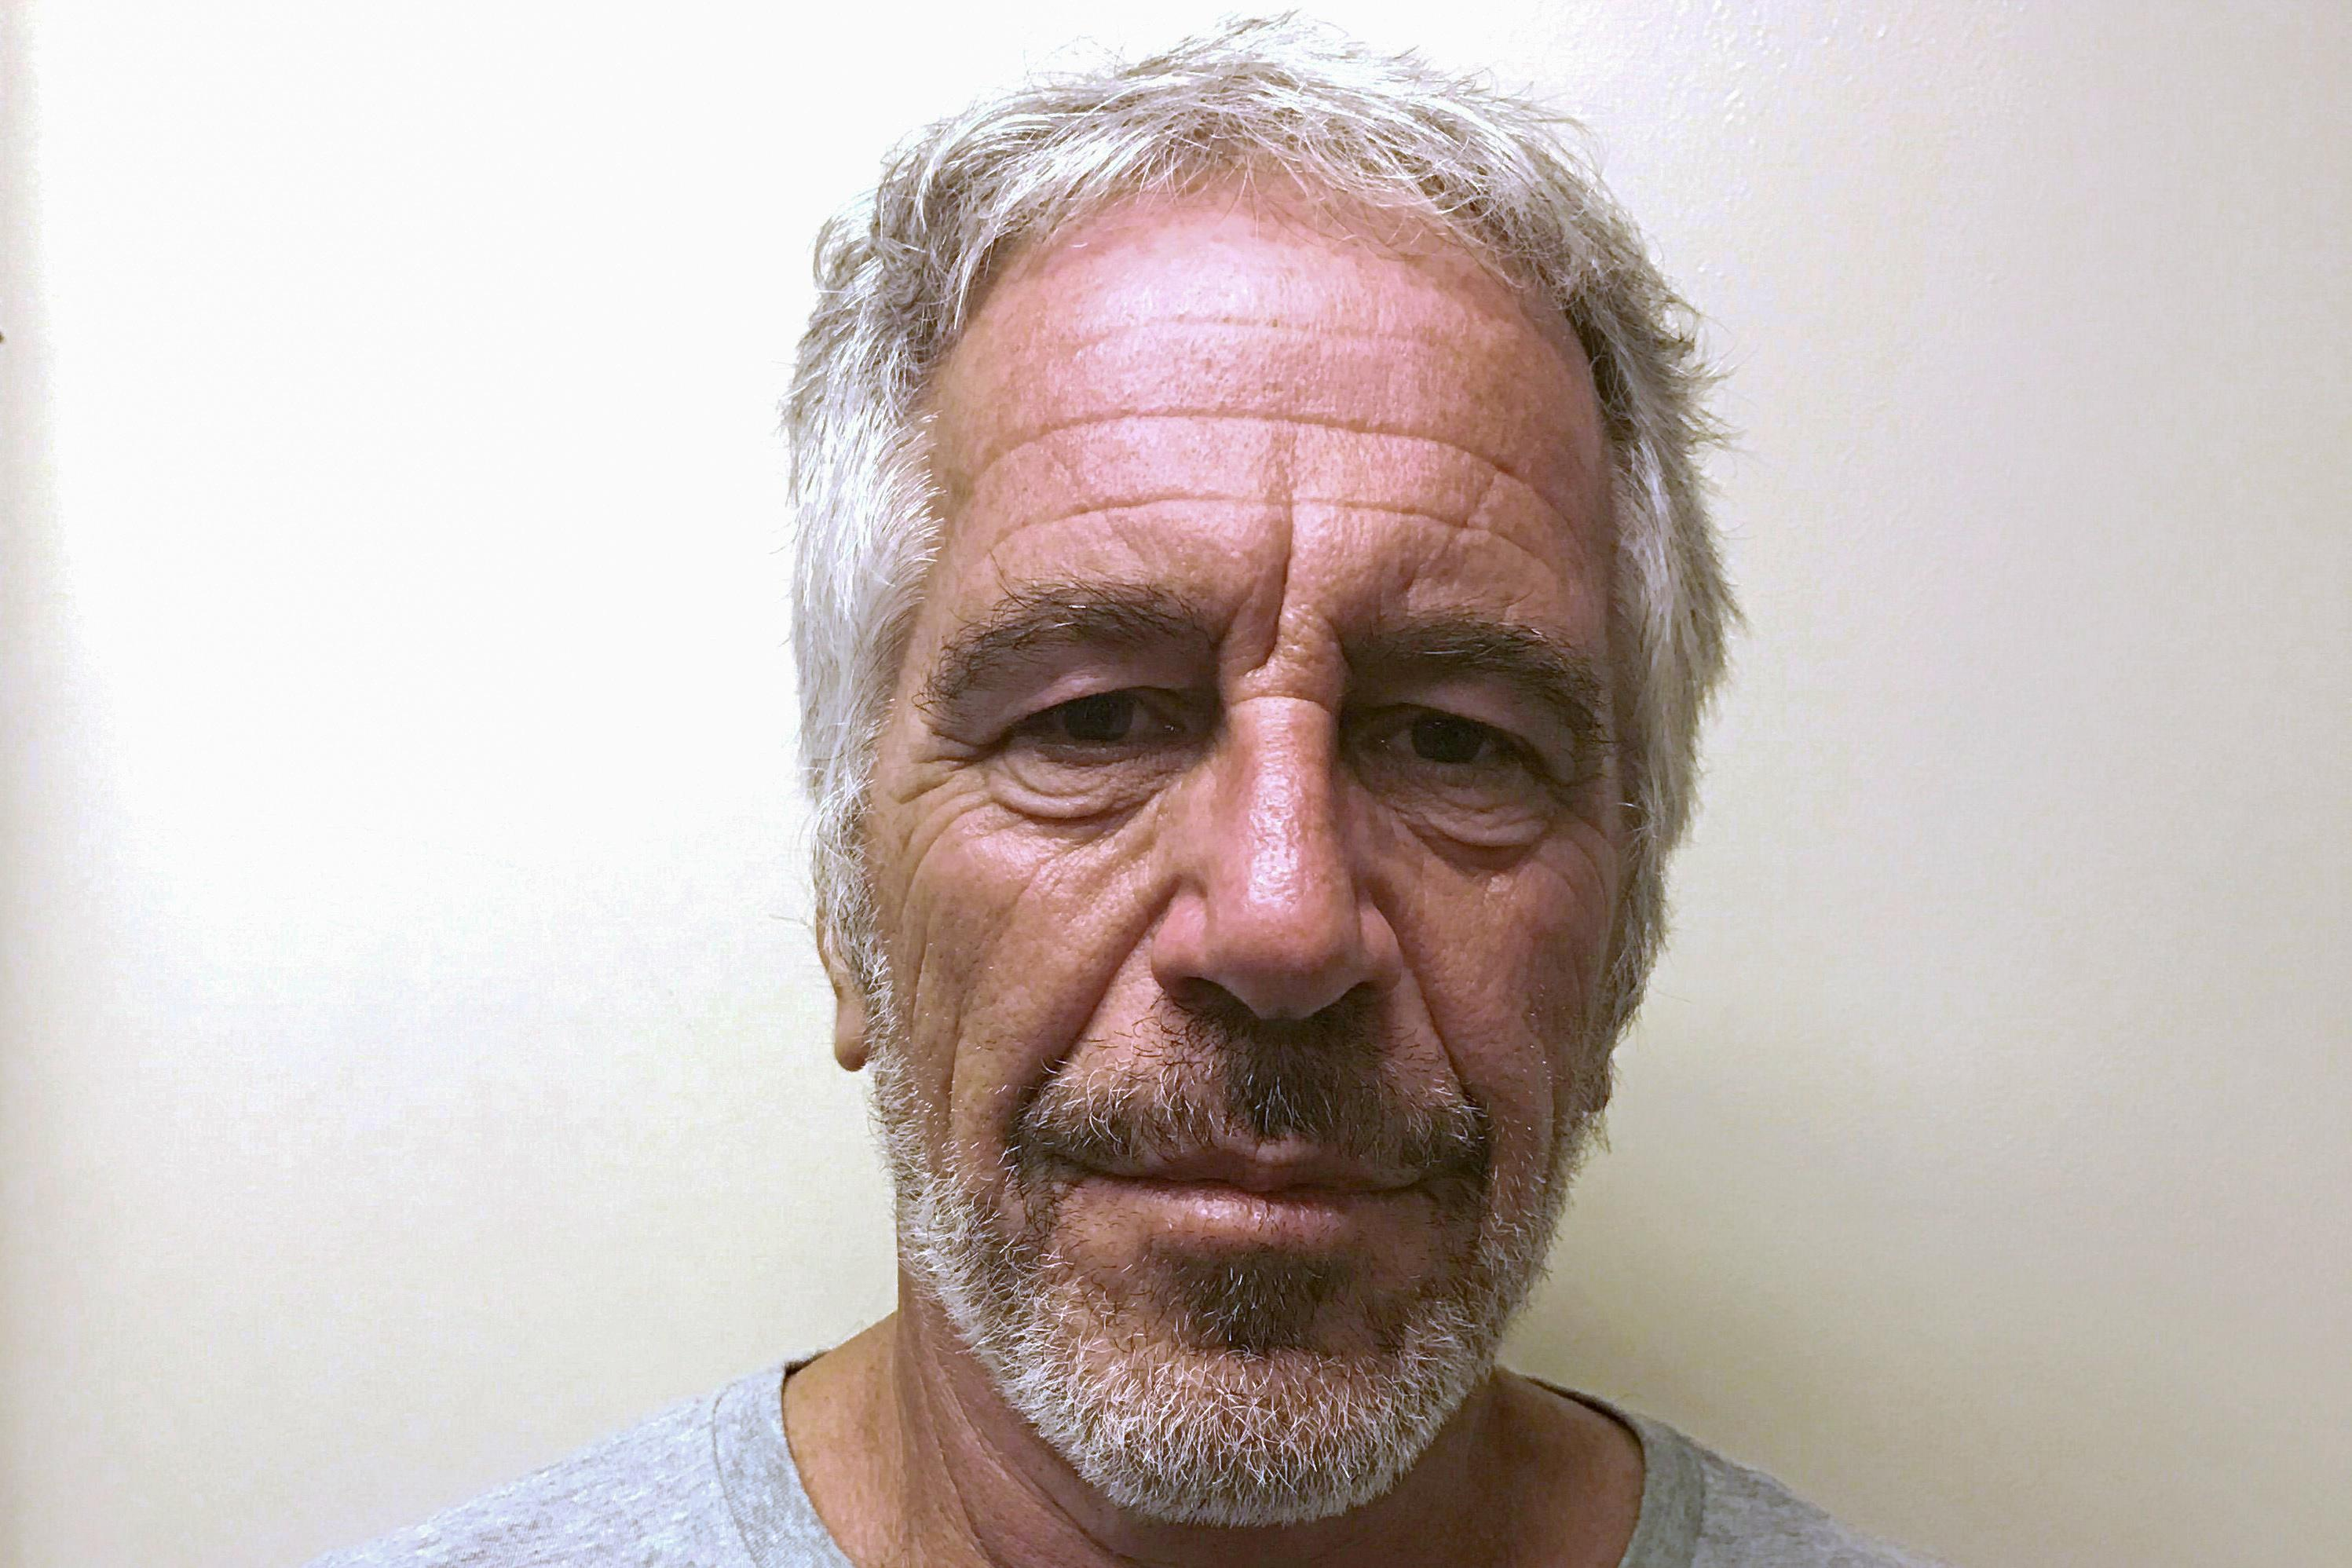 Top U.S. lawmaker demands answers in Jeffrey Epstein's death